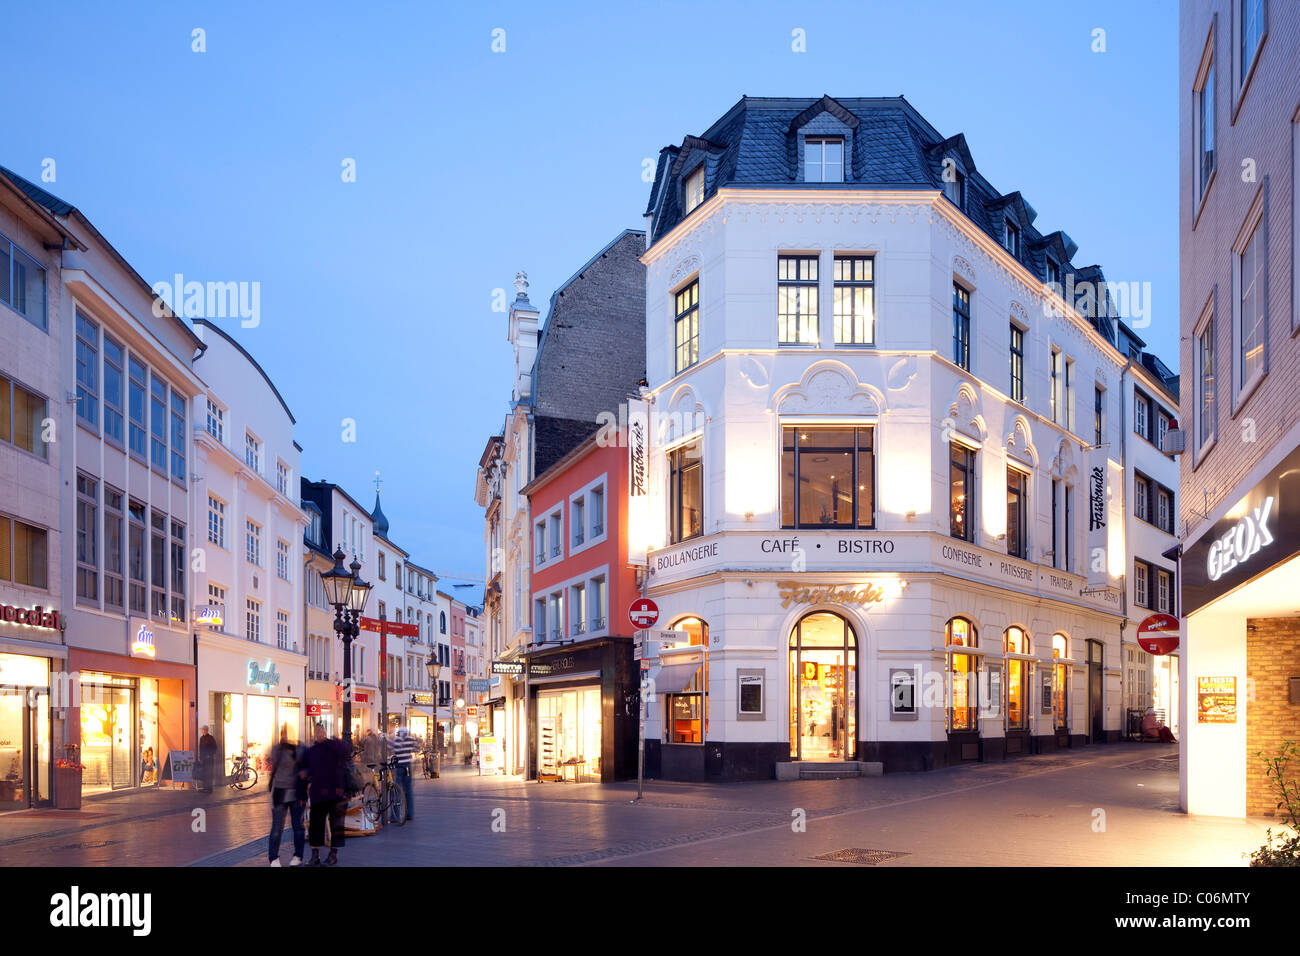 Commercial businesses in the historic town centre, Bonn, Rhineland, North Rhine-Westphalia, Germany, Europe - Stock Image